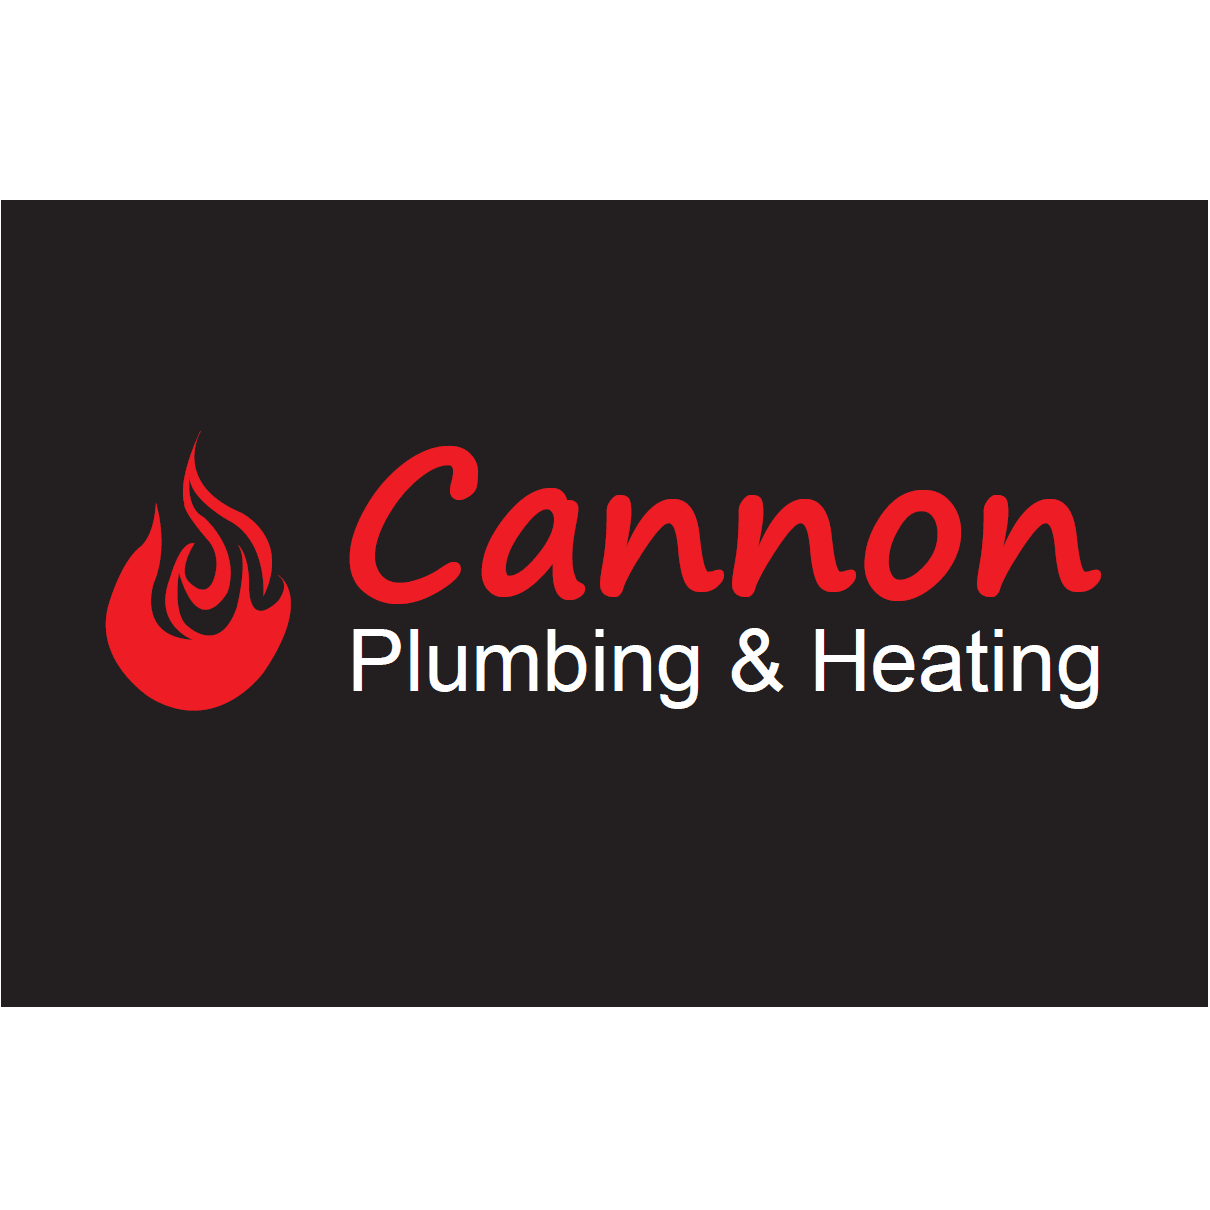 Cannon Plumbing & Heating Lancing 01903 767702